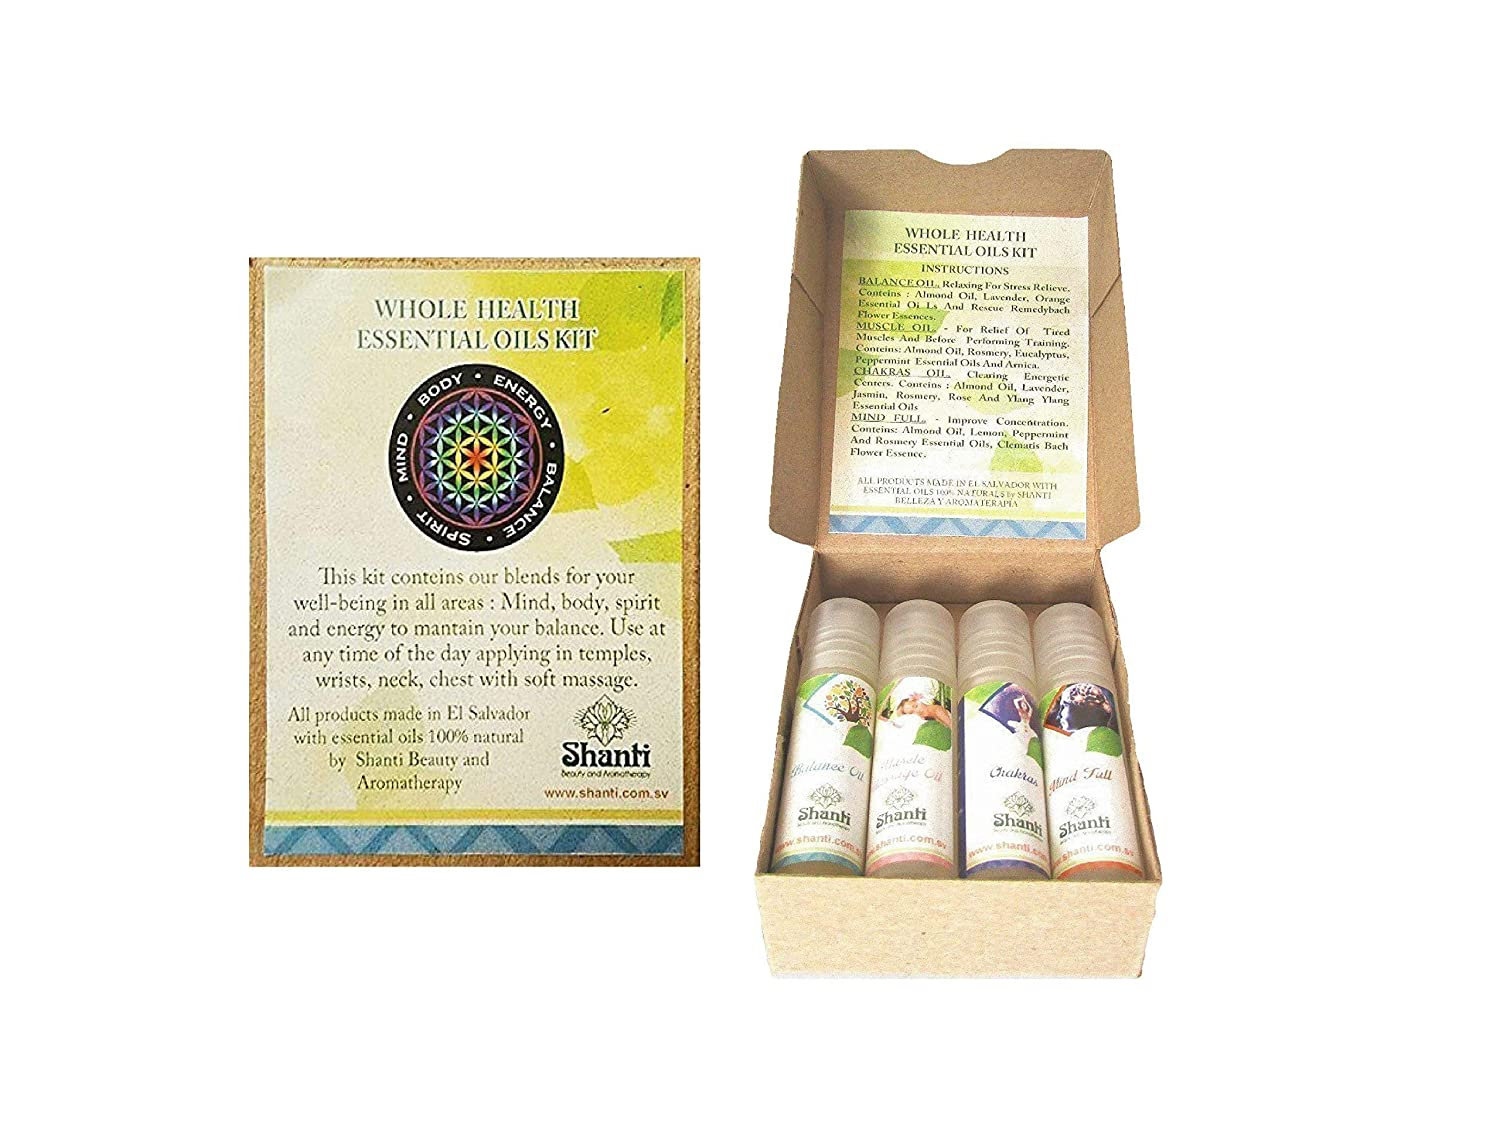 Essential Oil Blends HOLISTIC Kit (Set Of 4) : Pocket Size For Travel Aromatherapy, Made With Natural Organic Essential Oils - For Relaxation, Calming, Anxiety, balance energy, mental clarity And Muscle pain Relief